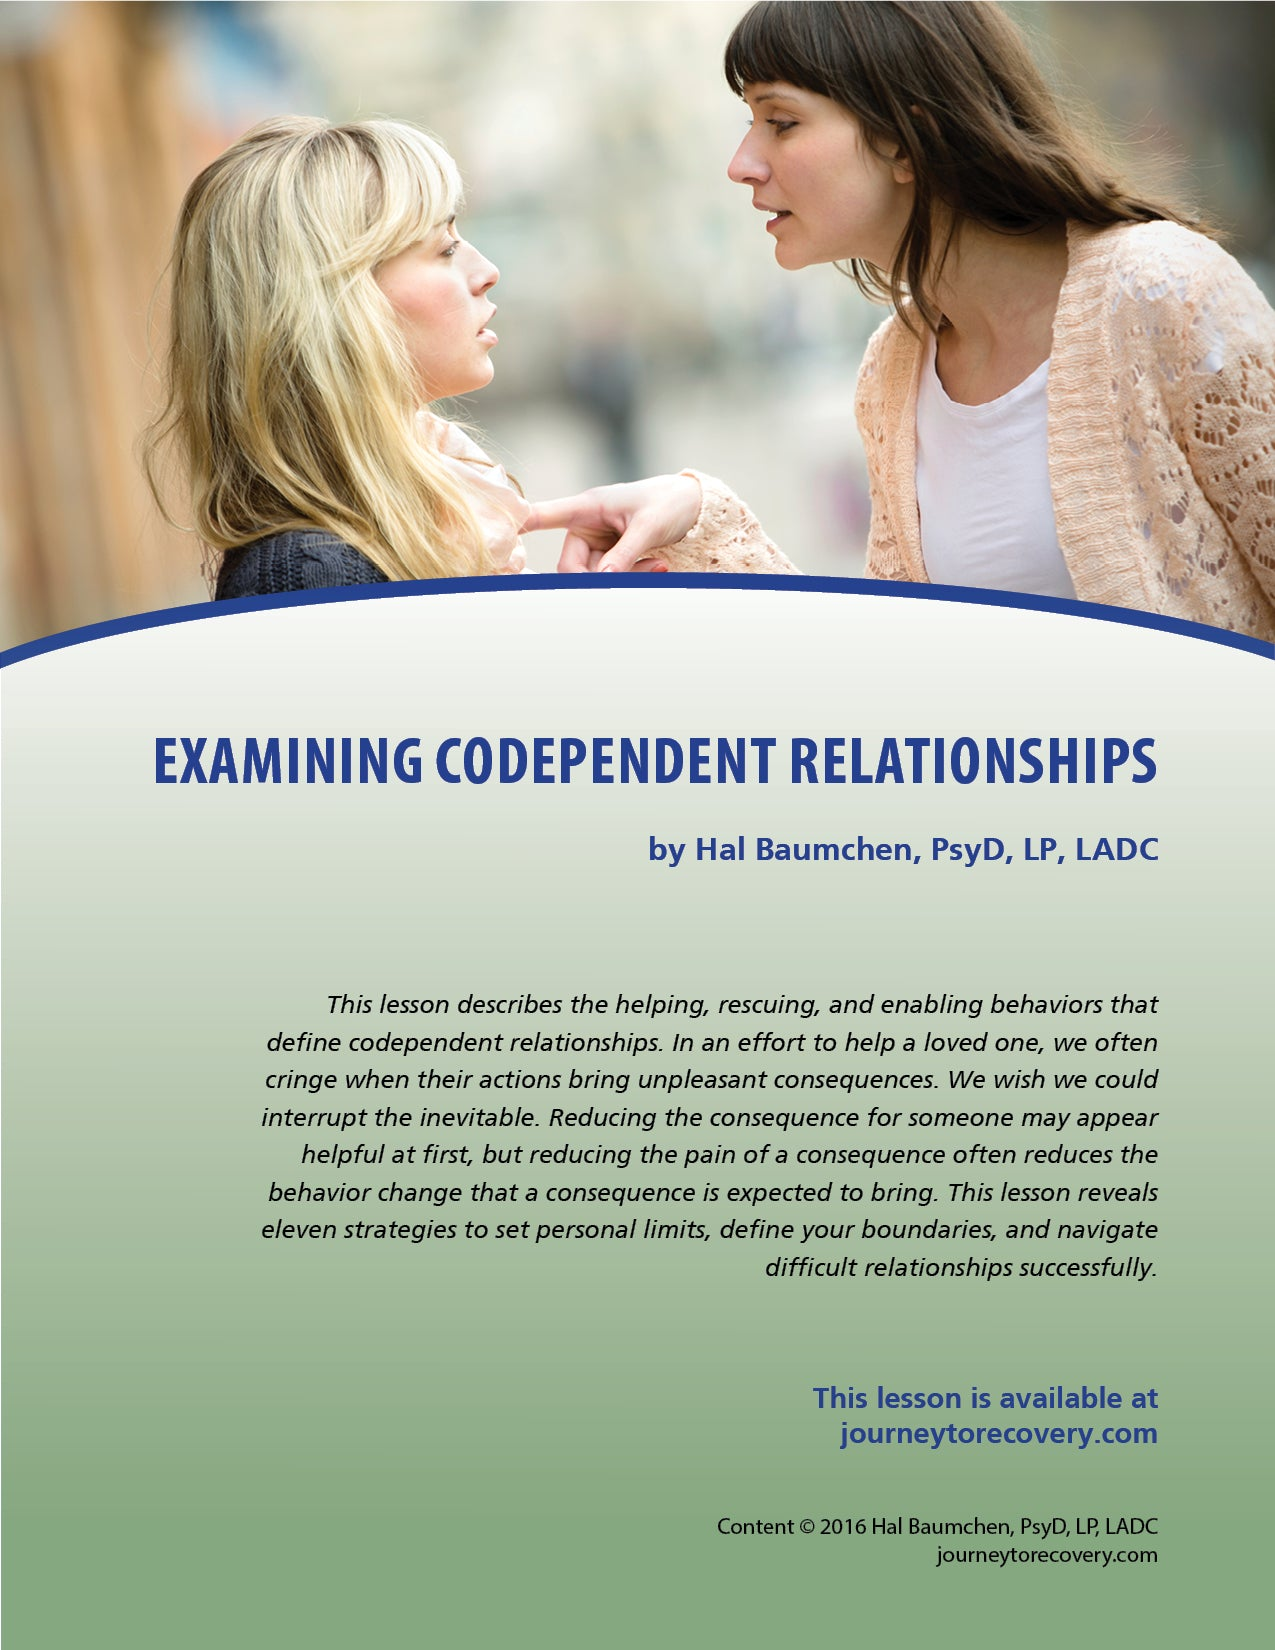 Examining Codependent Relationships